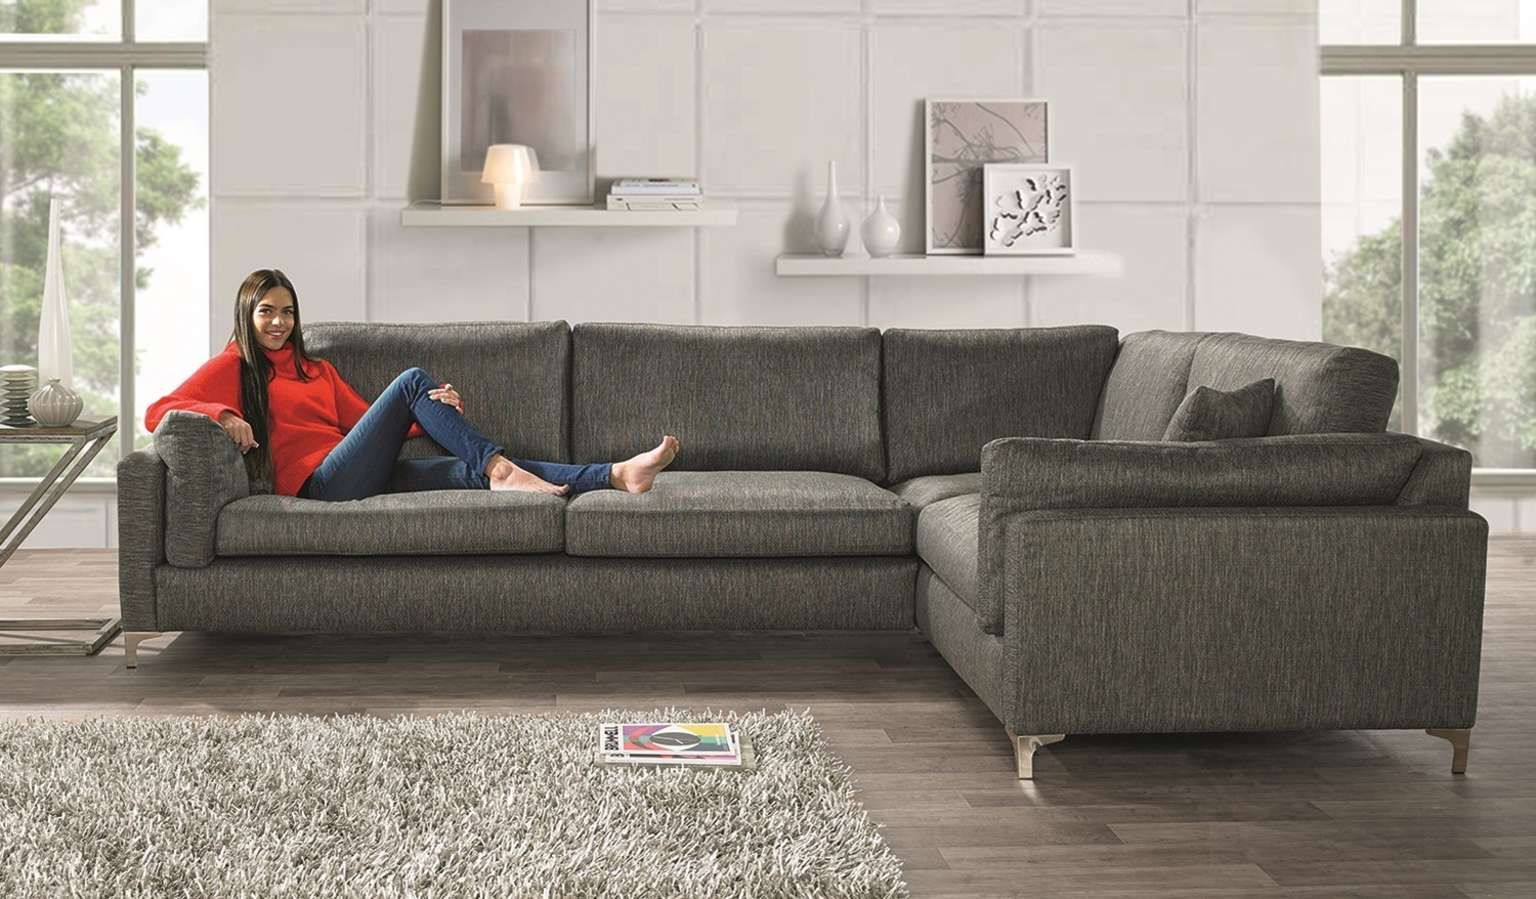 The Scrumptious Really Is A Scrummy Treat In Luxurious Woven Chenille This Sofa Range Is Fabulous In Design And Big On Com Comfy Corner Sofa Corner Sofa Sofa